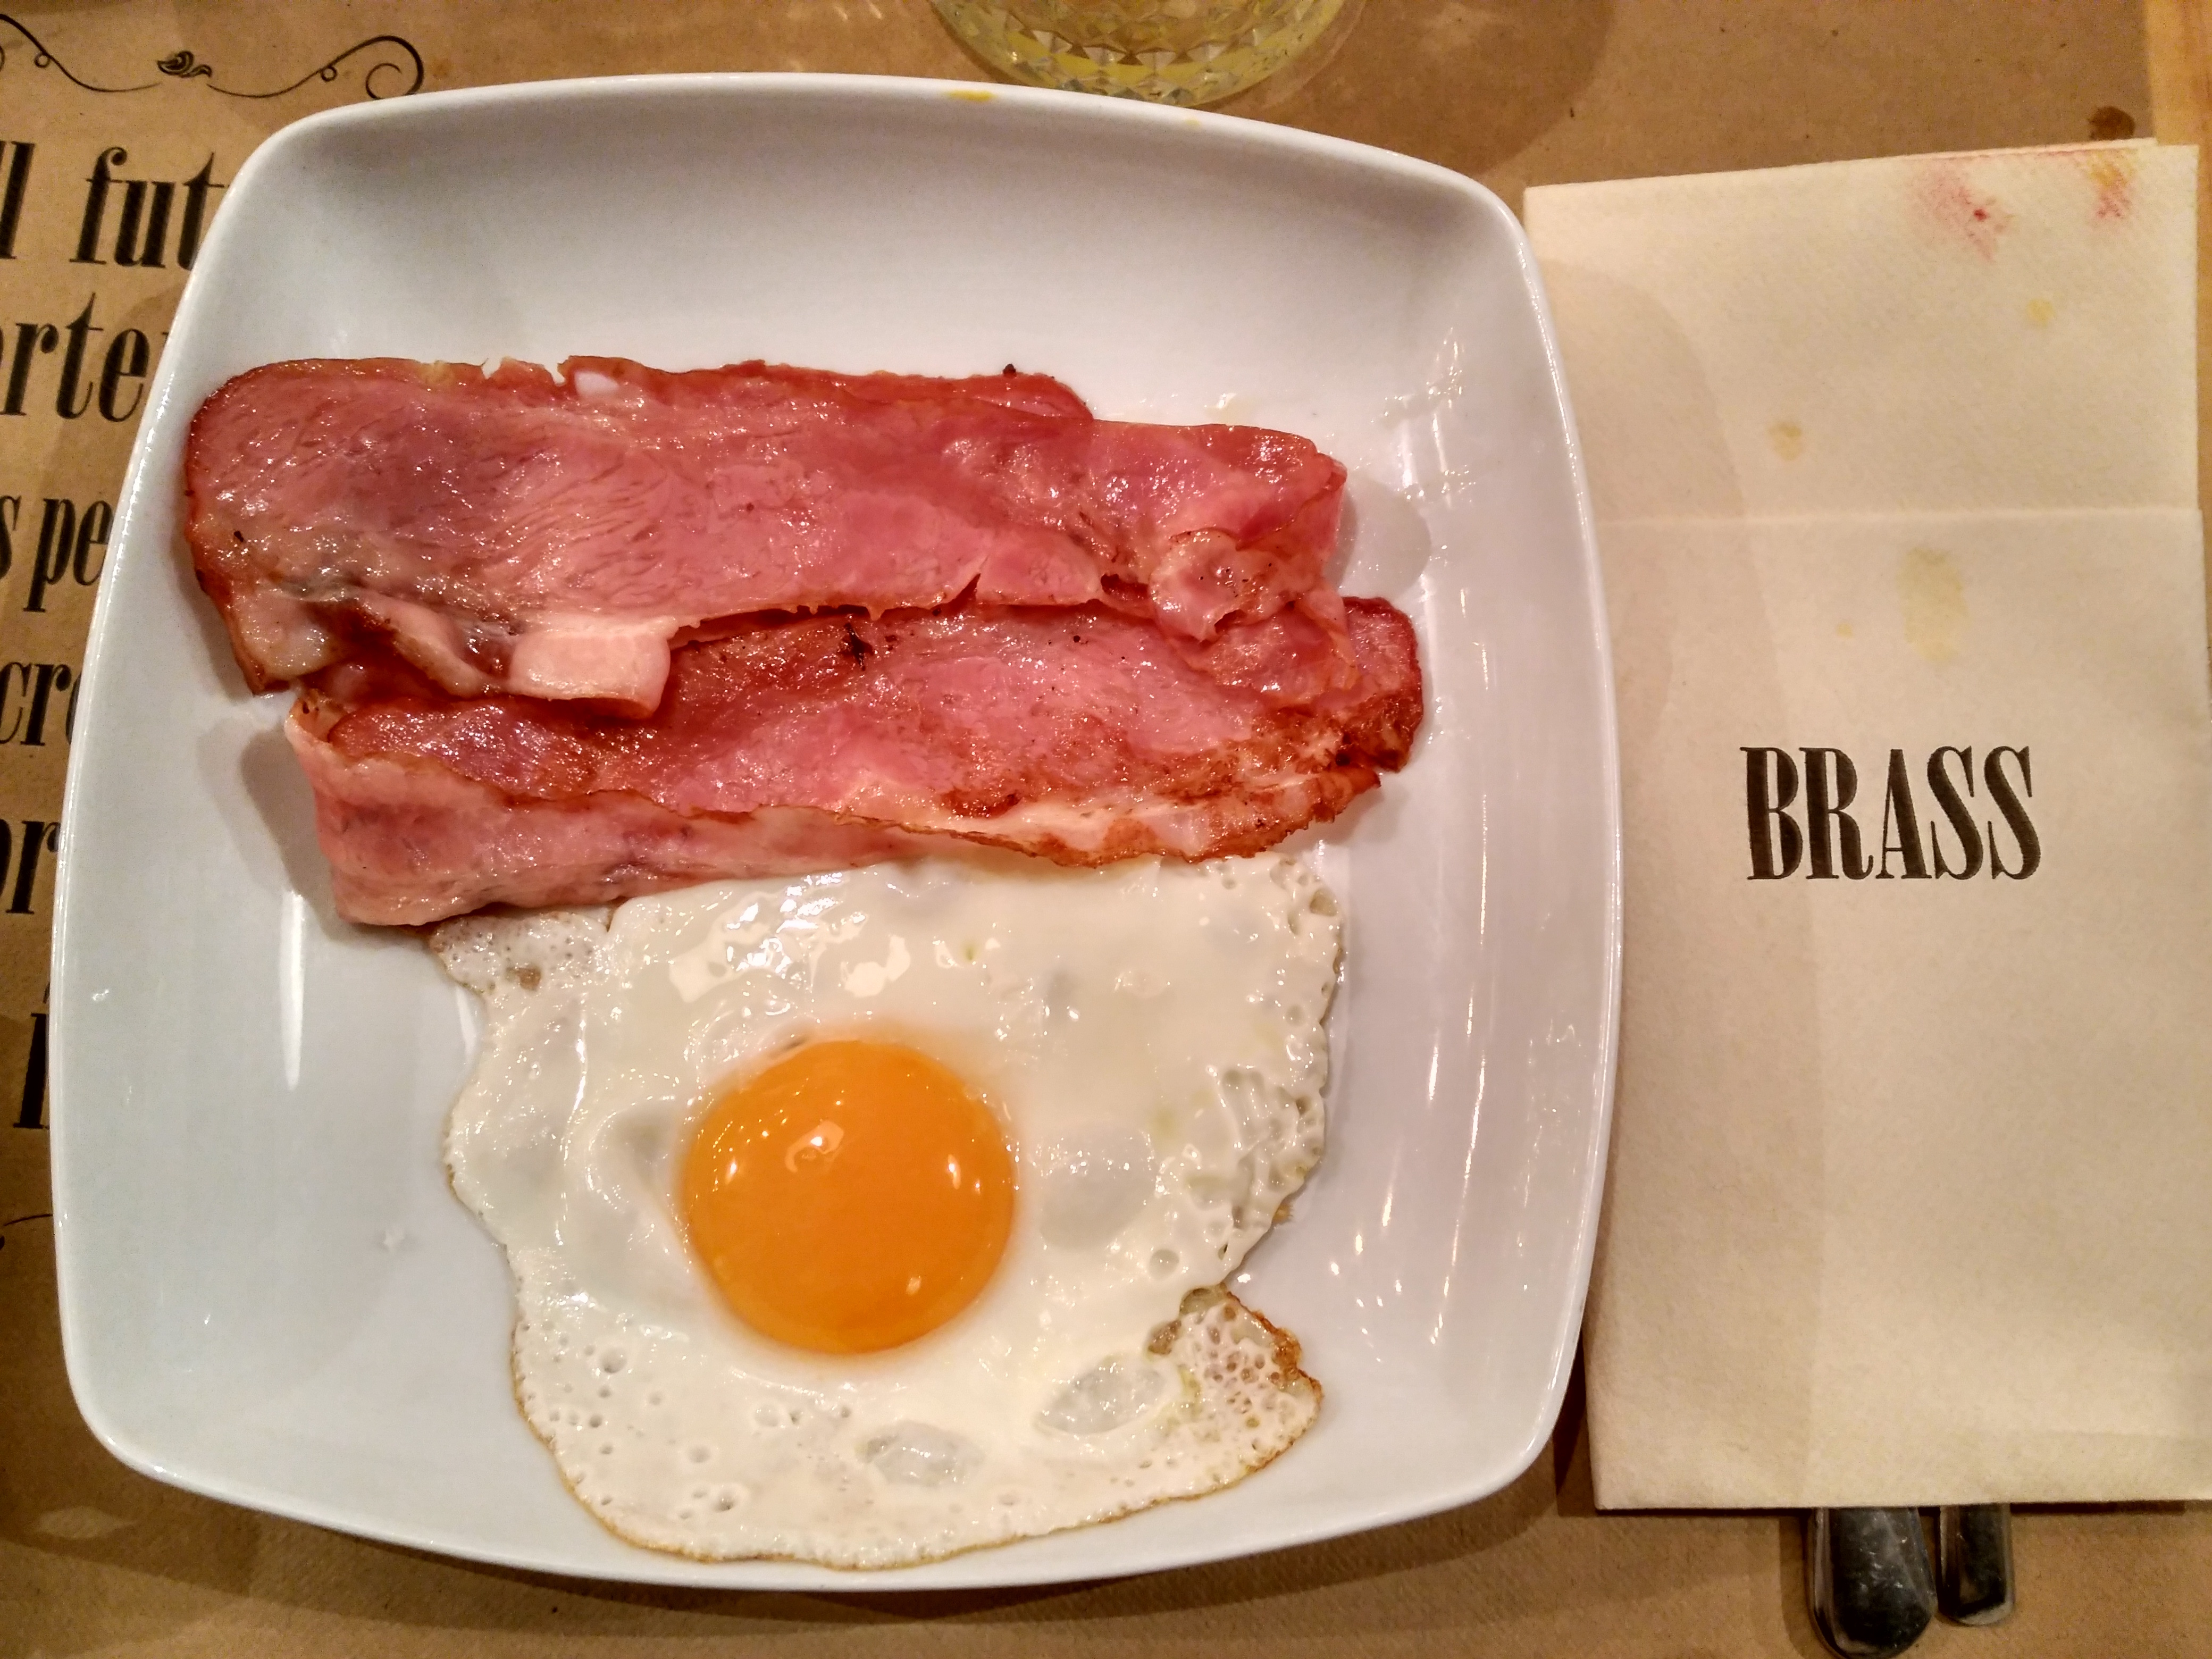 Huevos con bacon Brass 27 Brunch Bilbao